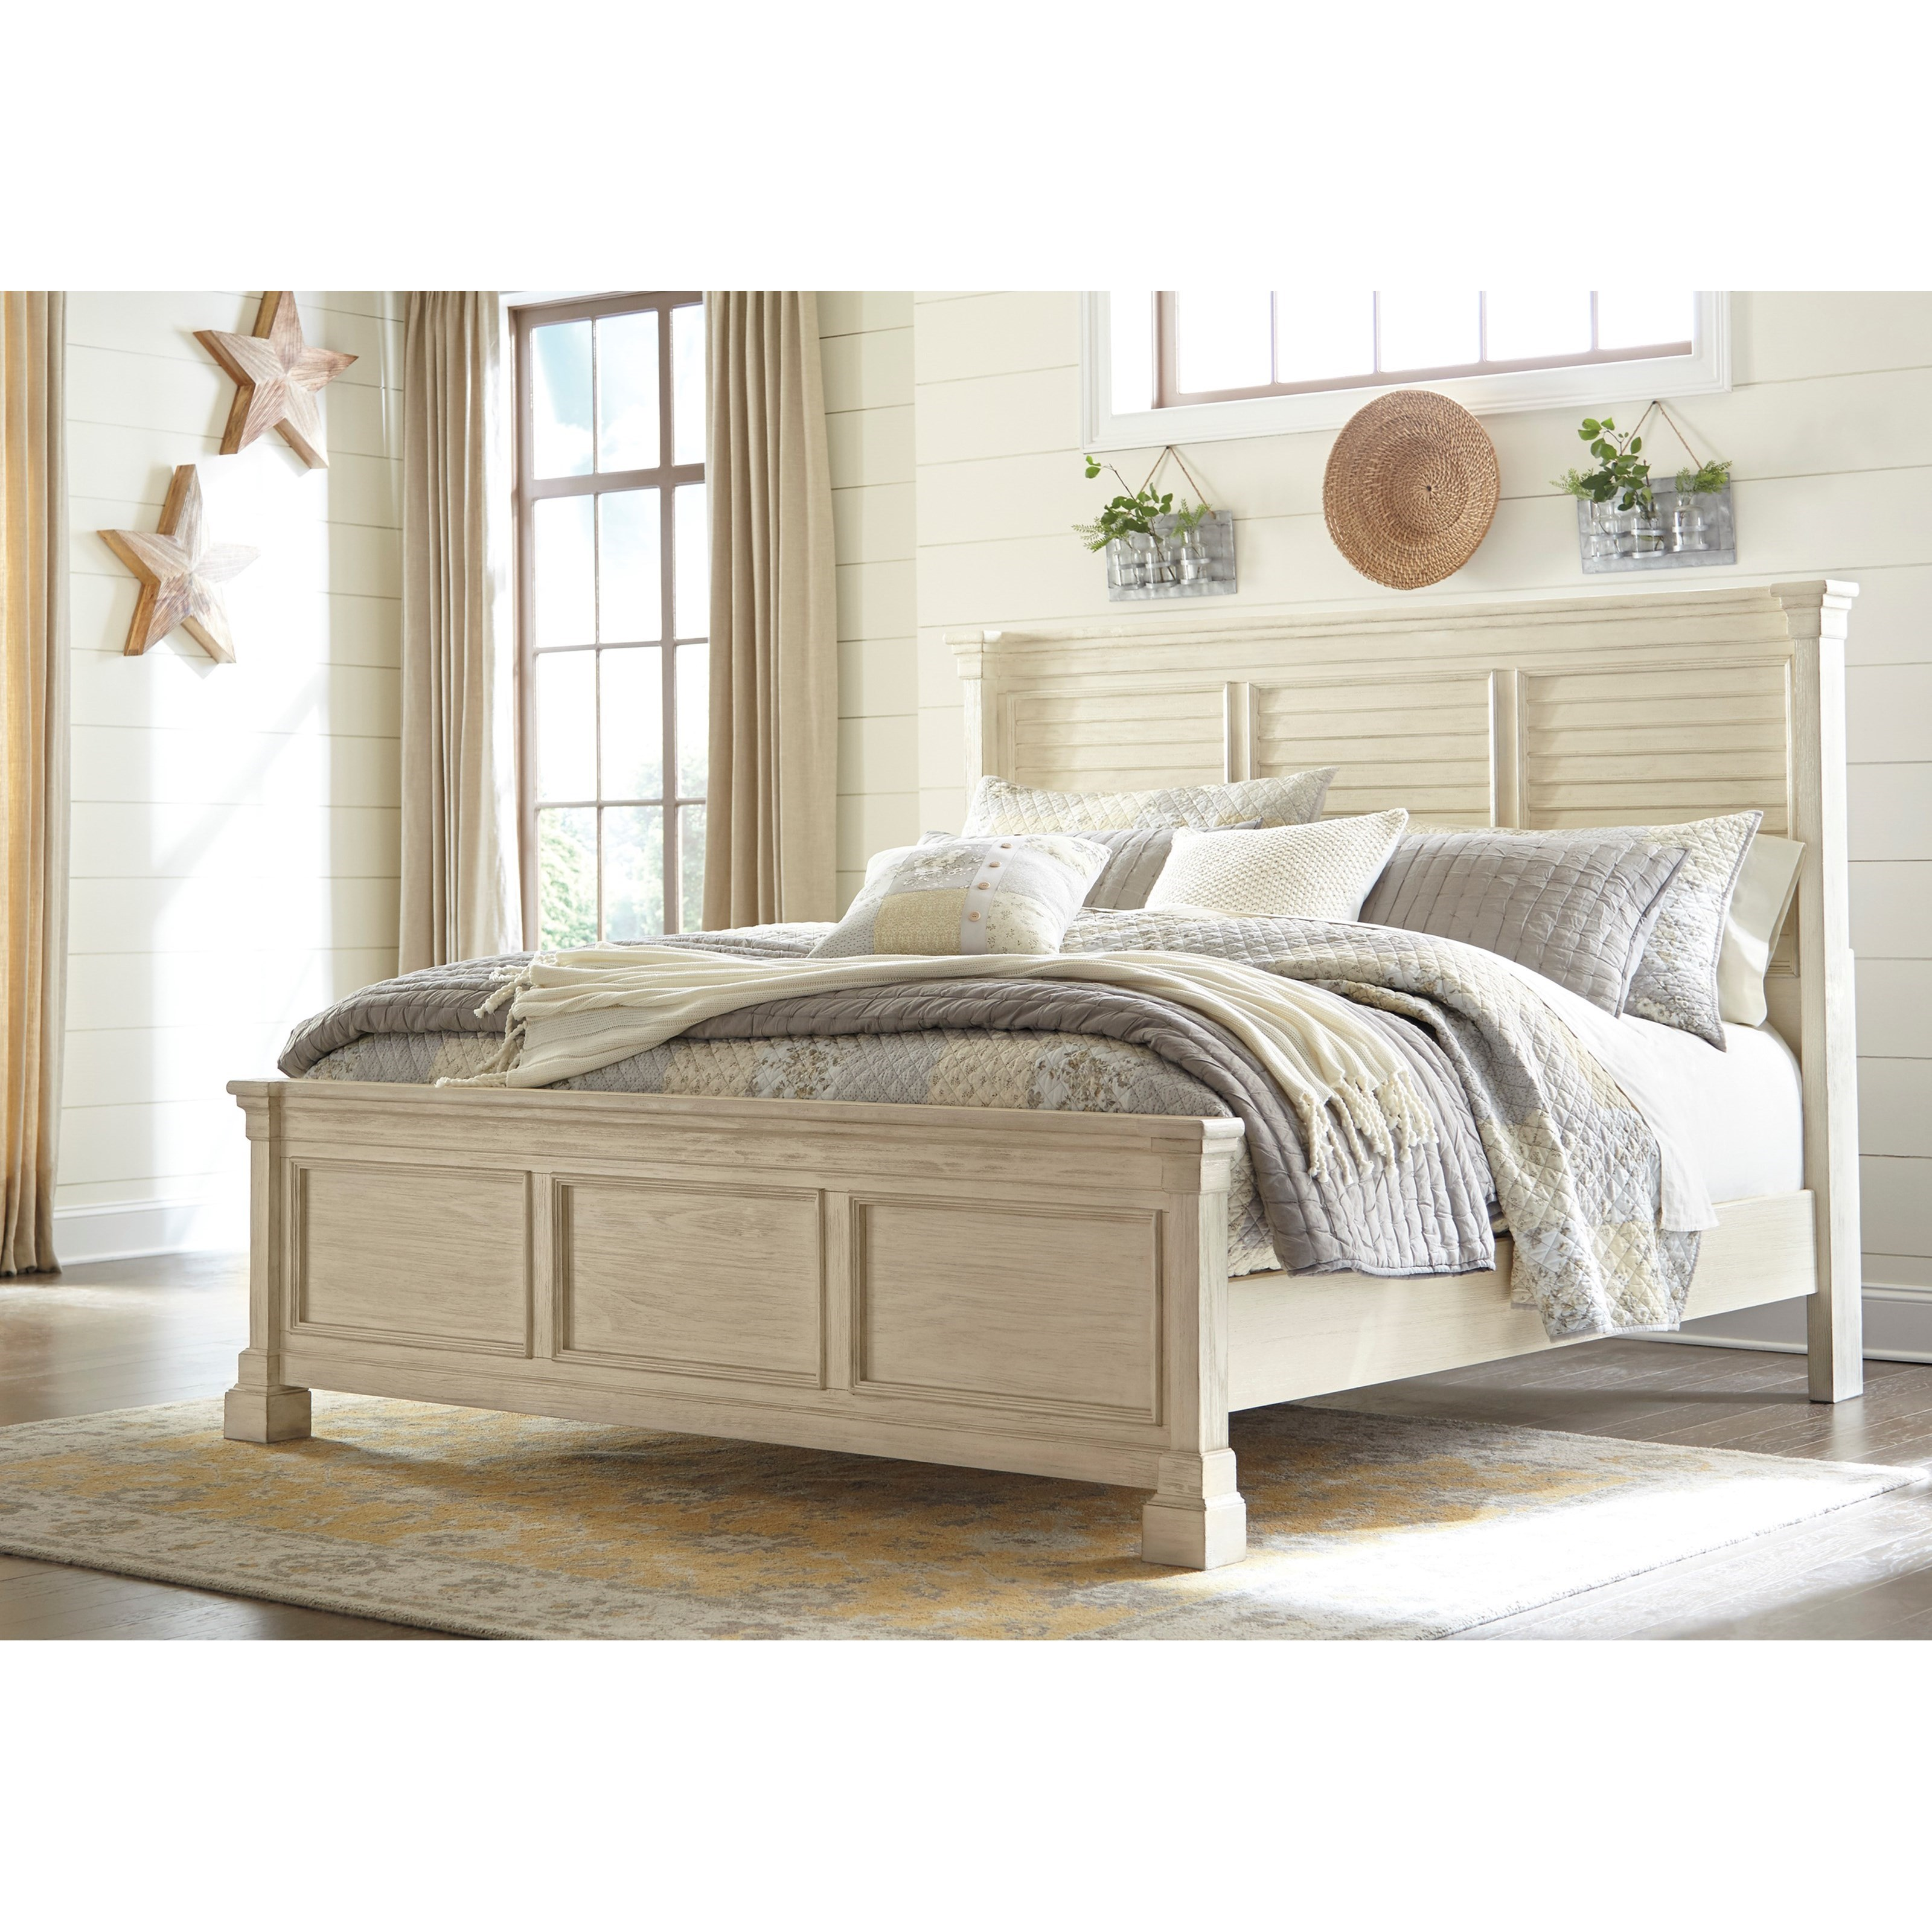 Signature design by ashley bolanburg king louvered for Panel bed mattress